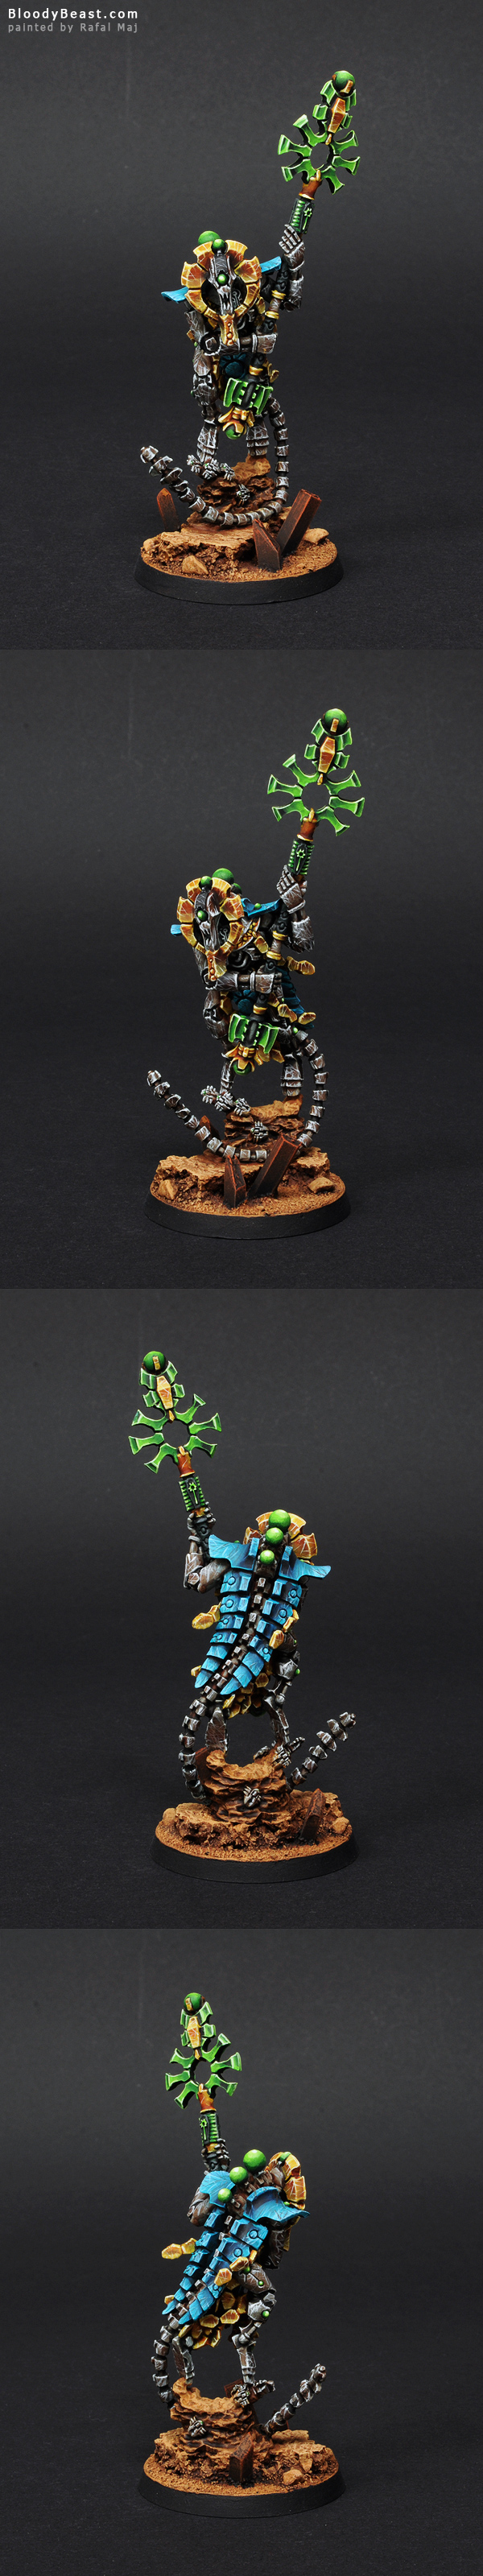 Necron Orikan The Diviner painted by Rafal Maj (BloodyBeast.com)